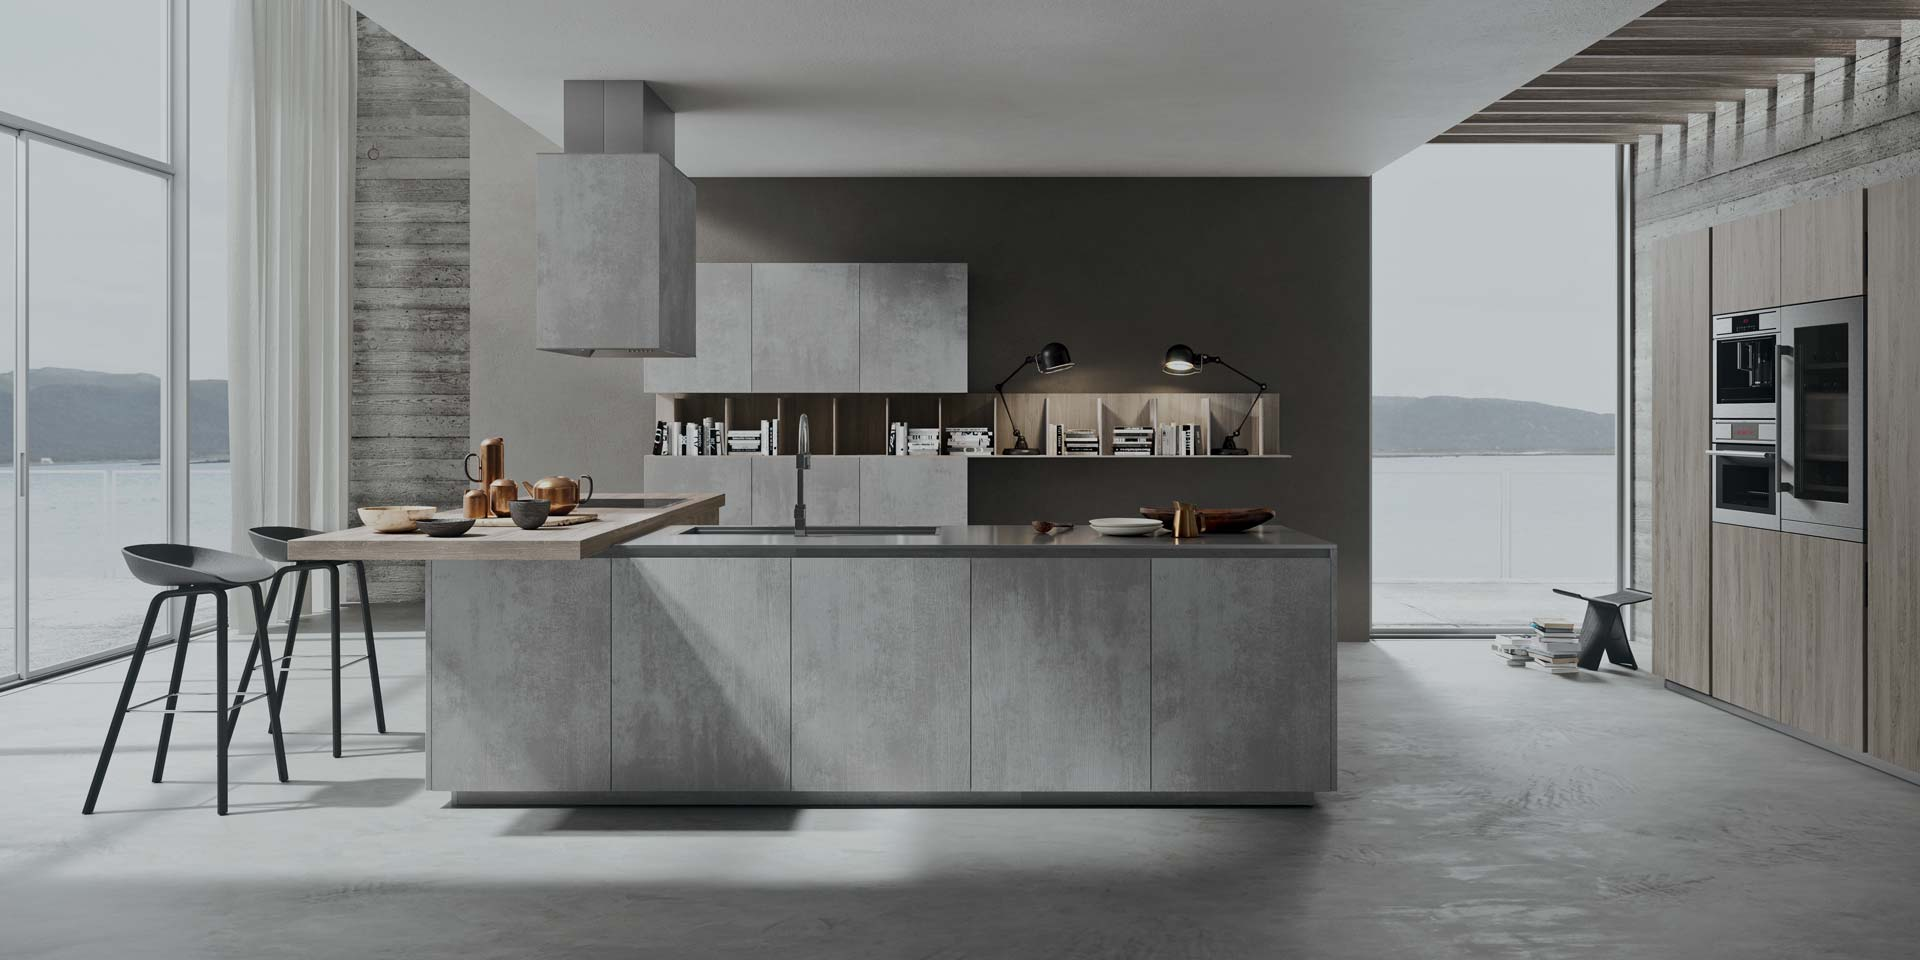 2 1 System A New Design For Your Modern Kitchen